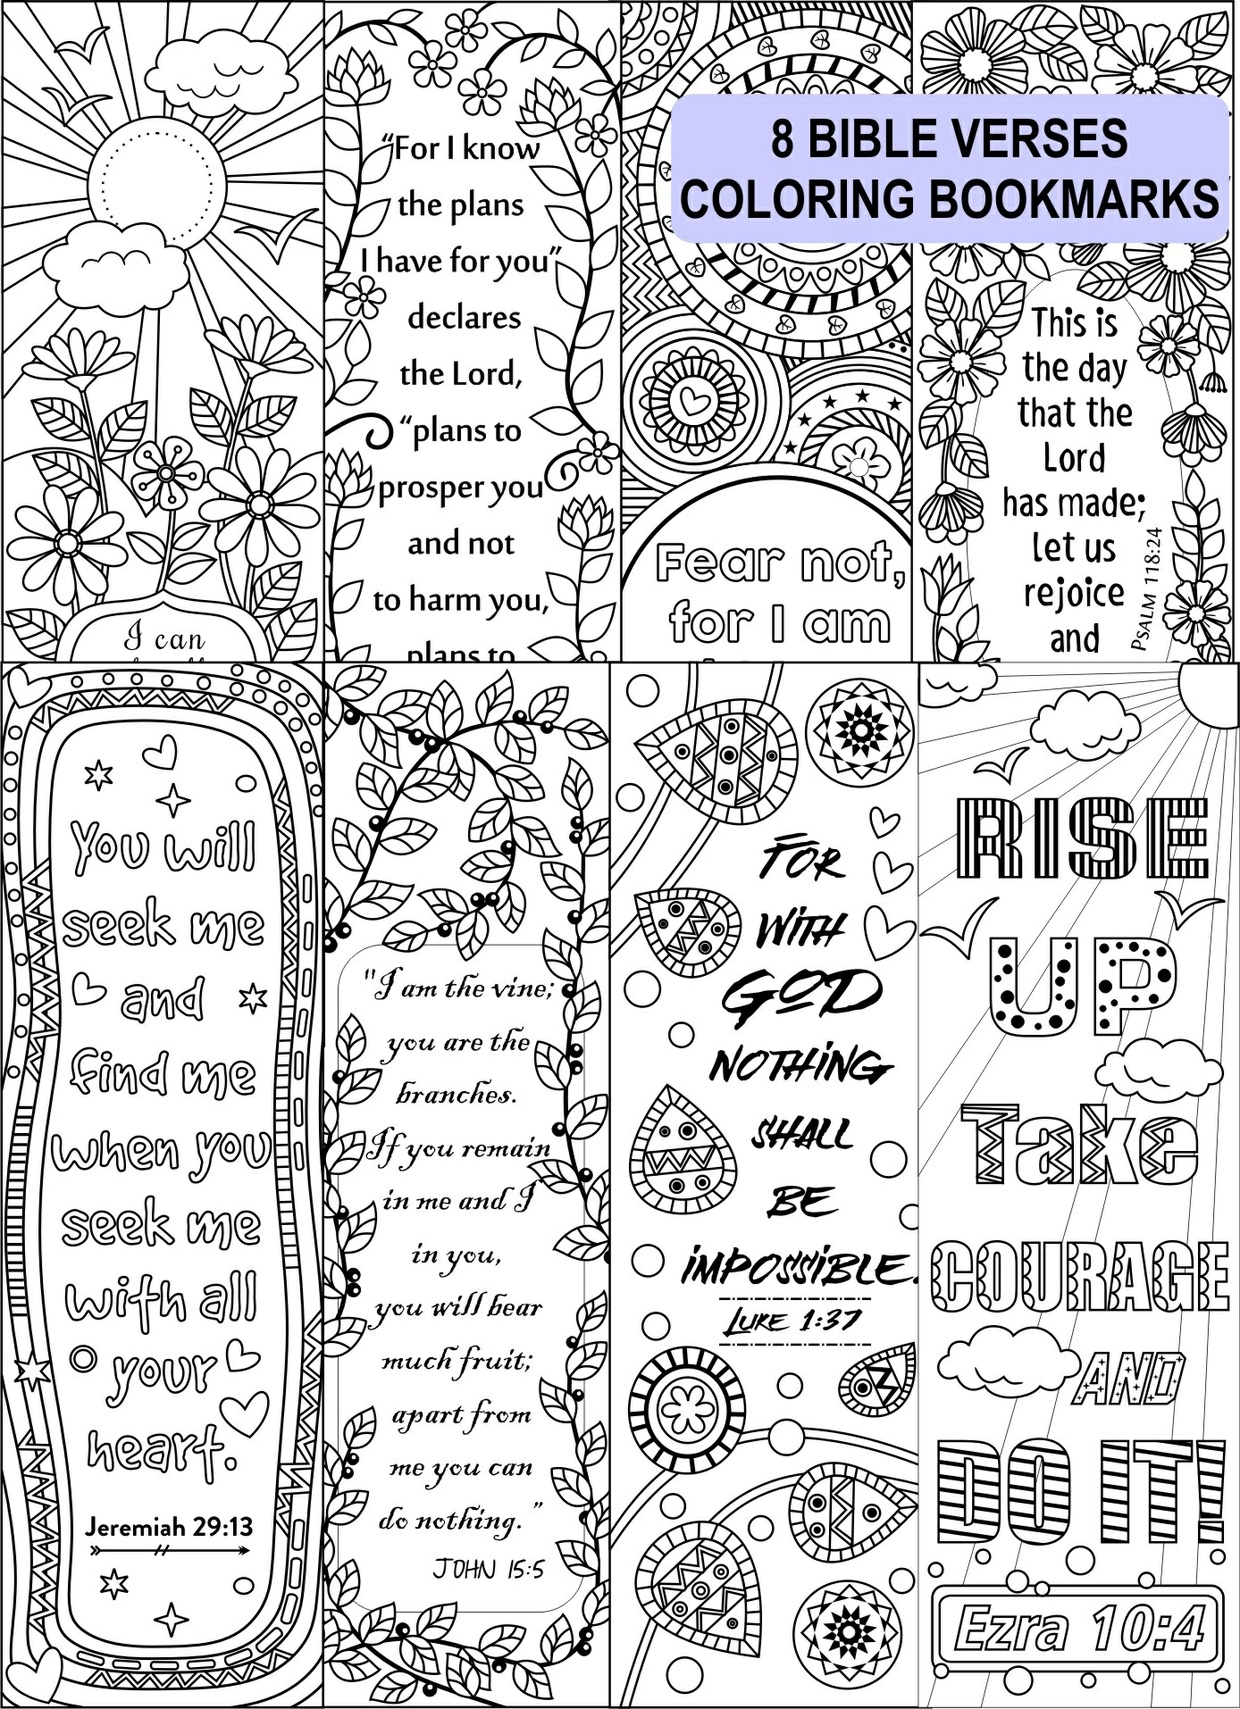 religious bookmark templates - 8 bible verse coloring bookmarks ricldp artworks